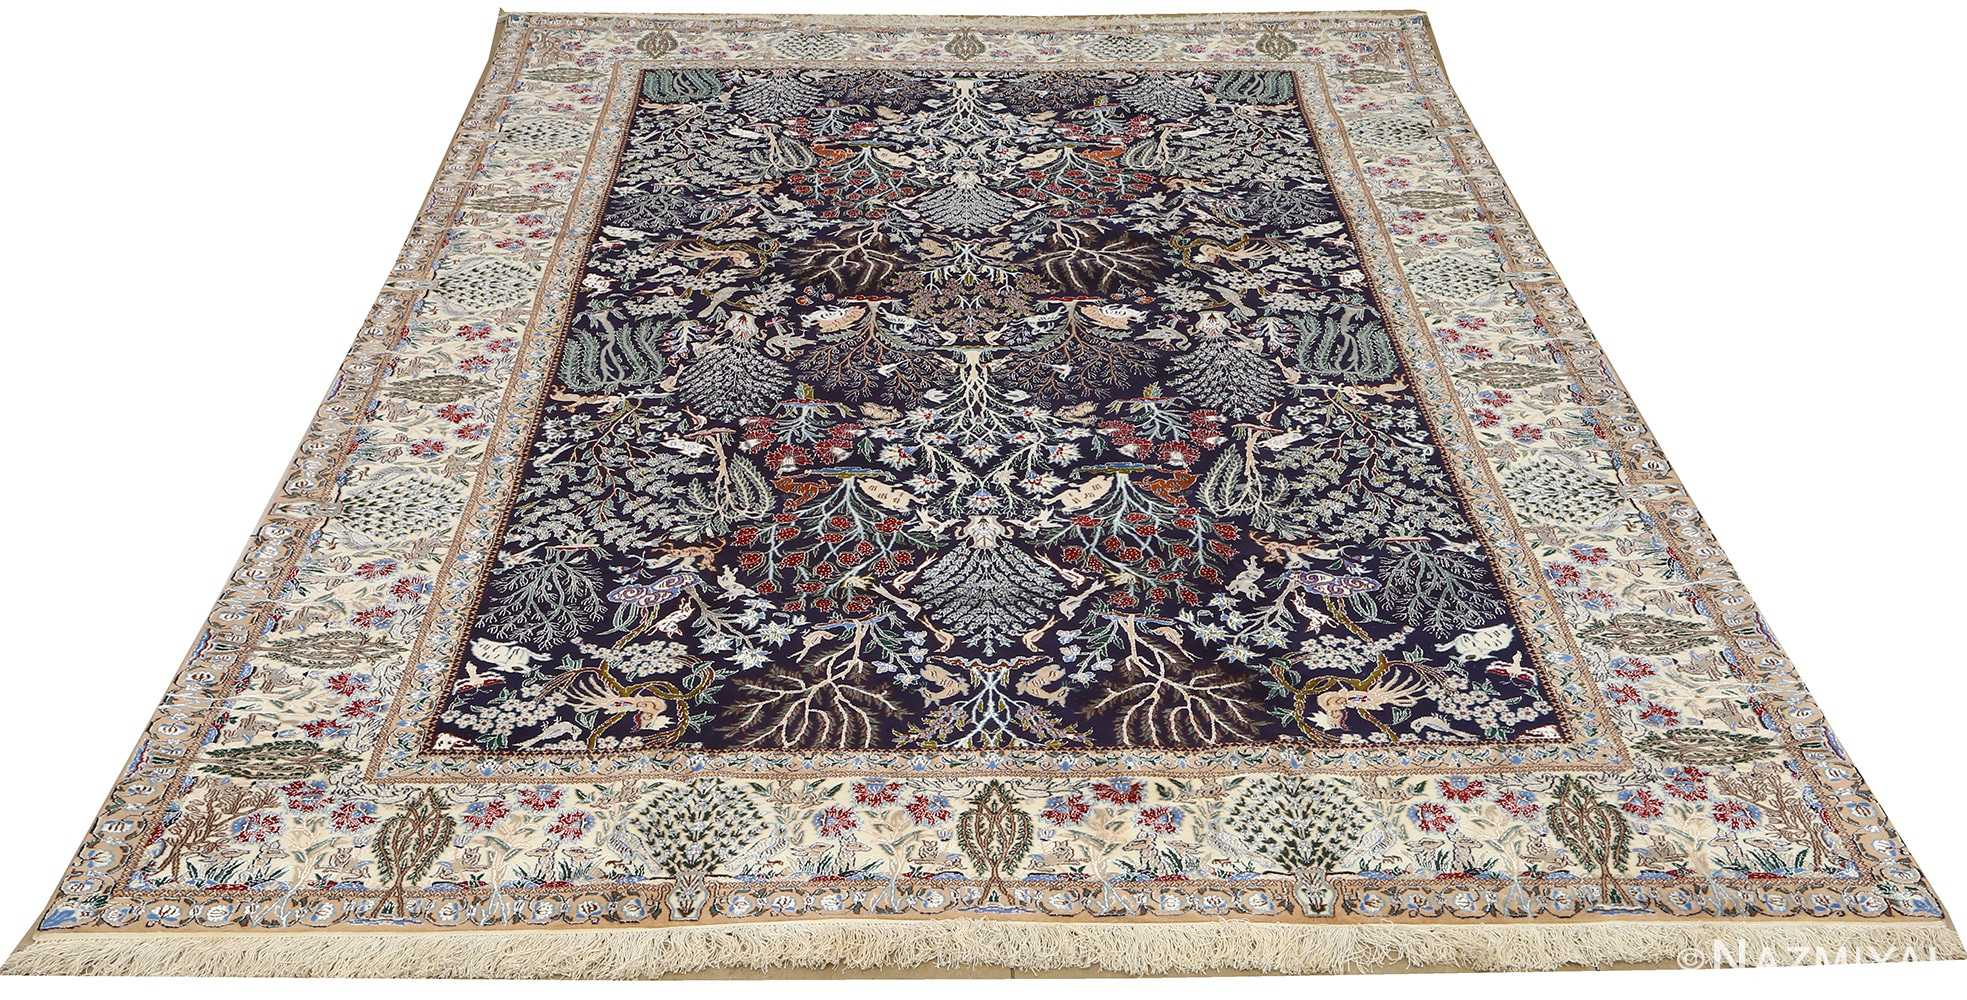 Intricate Tree Of Life Vintage Nain Persian Rug 51156 By